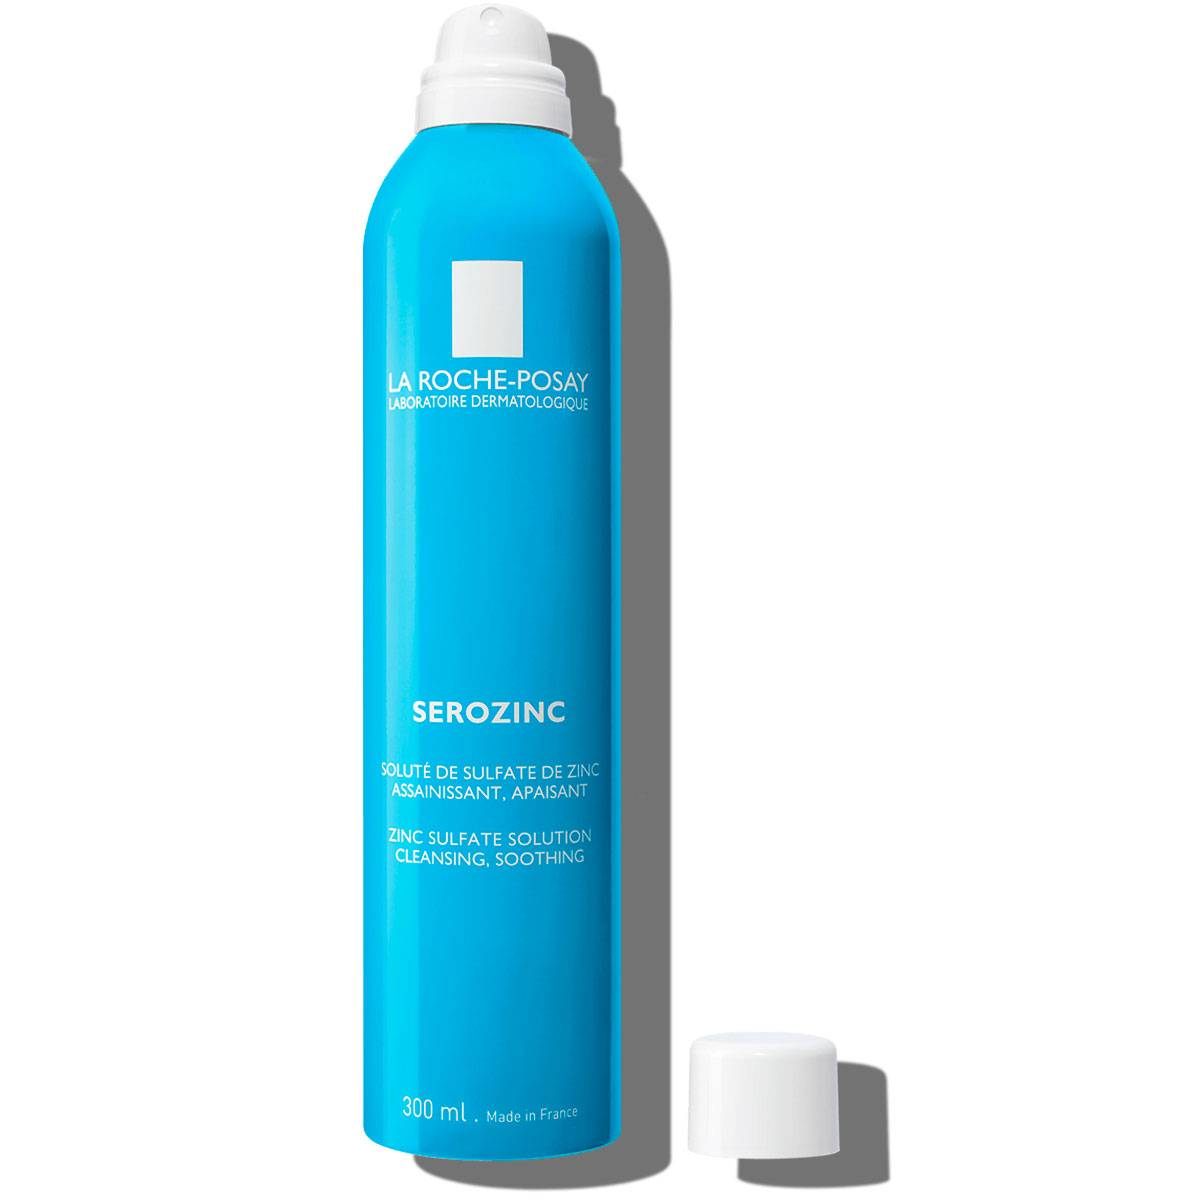 La Roche Posay ProductPage Serozinc Spray Zinc 300ml 3337875565783 Ope